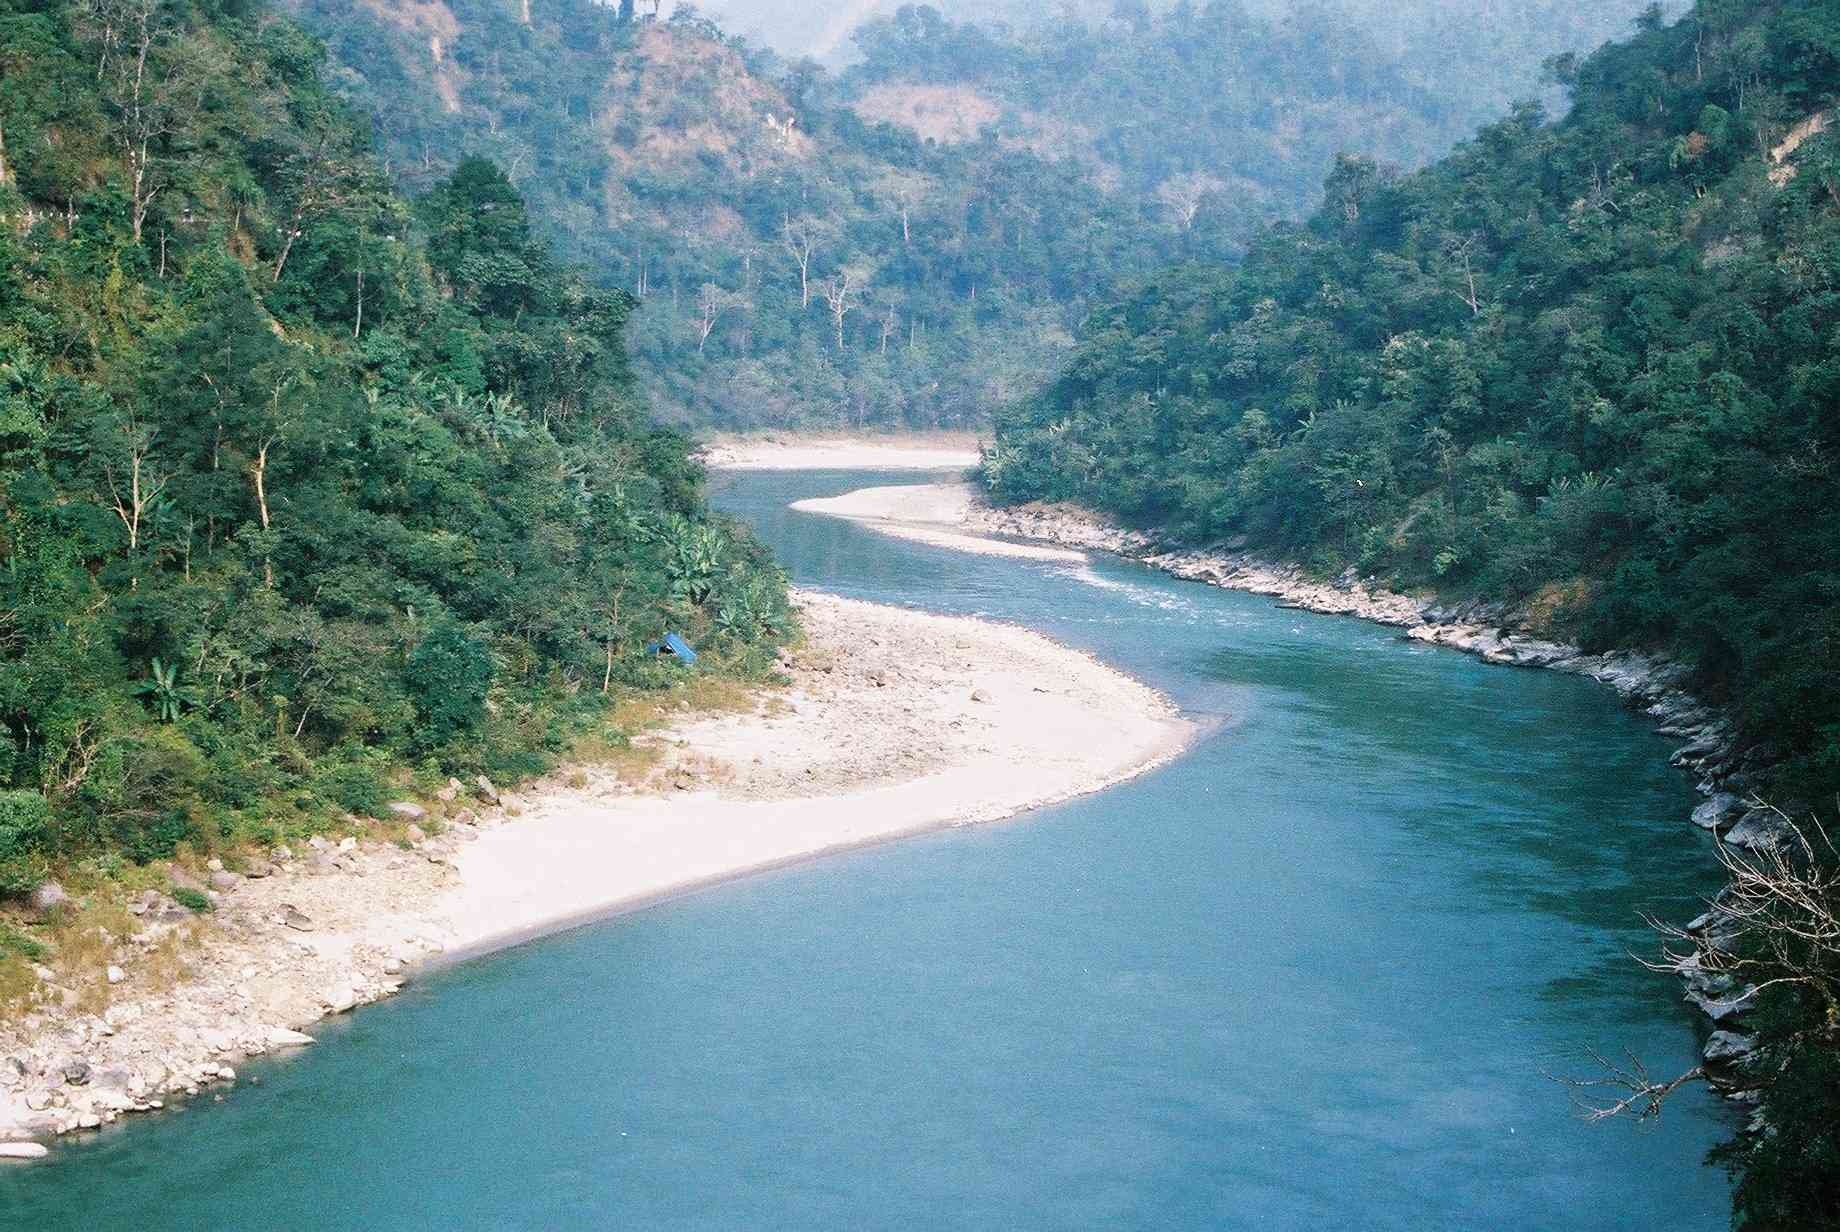 The view of River Teesta on the way to Kalimpong